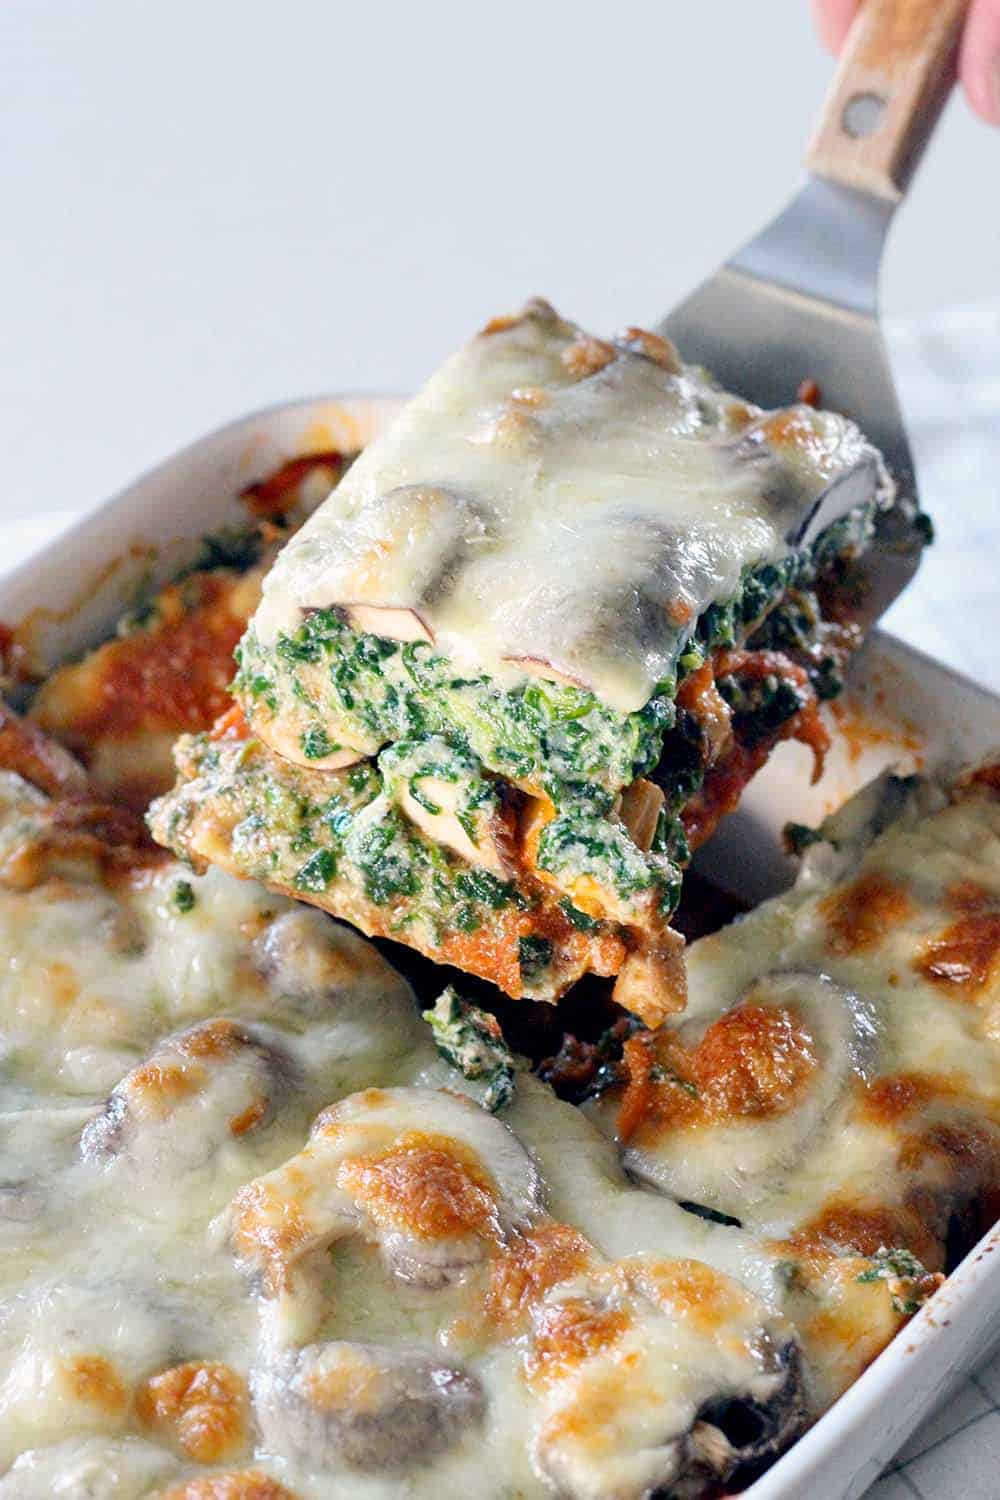 Discussion on this topic: Simple Vegetarian Spinach Lasagna, simple-vegetarian-spinach-lasagna/